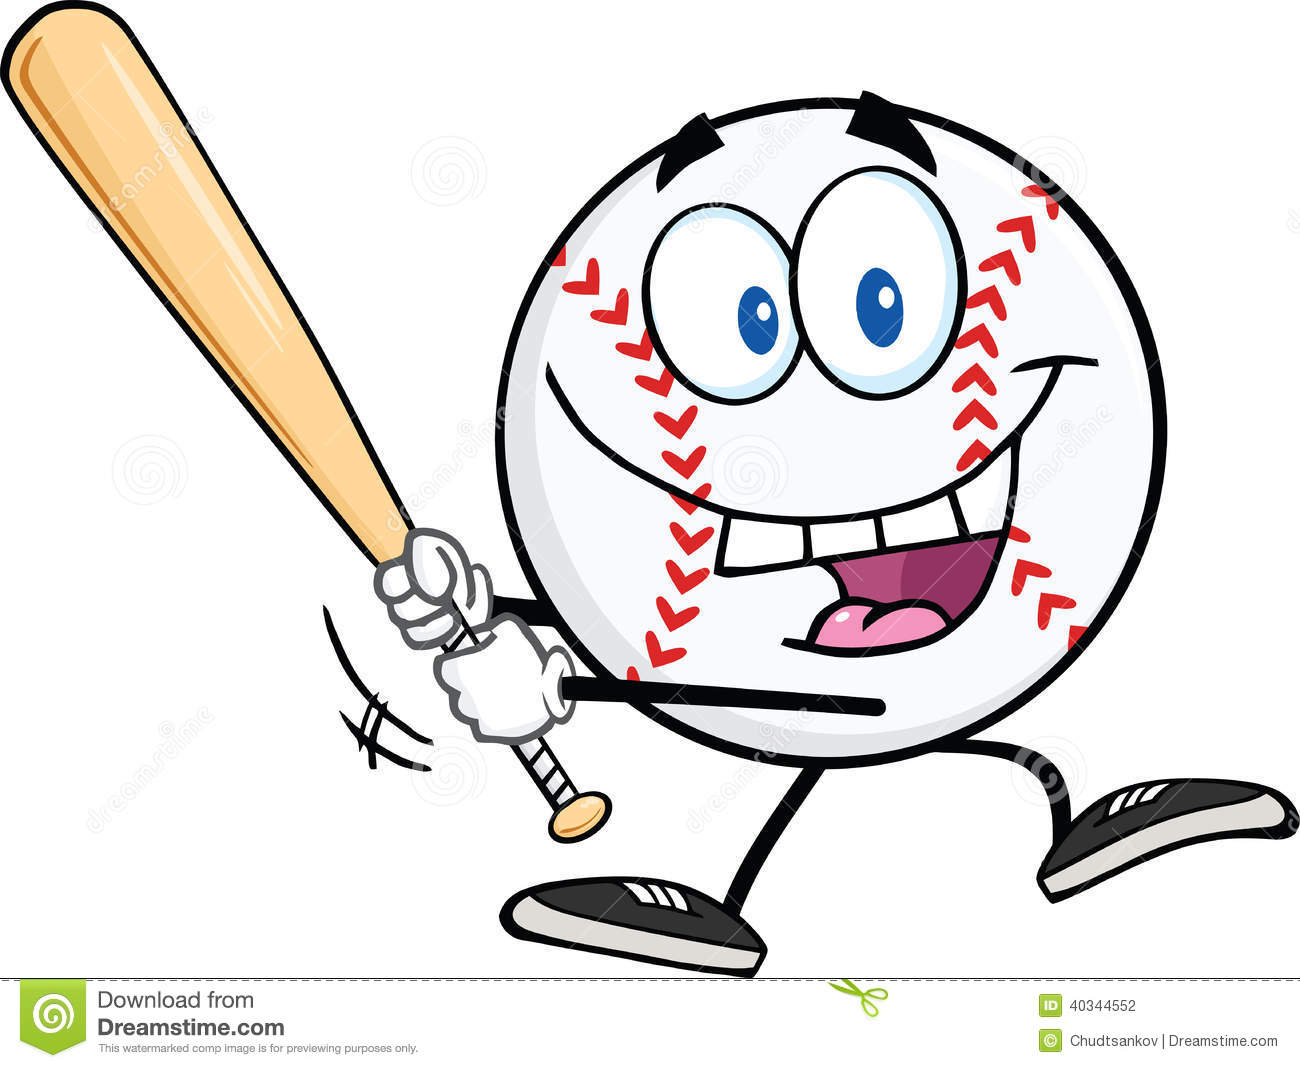 Bat clipart happy Clipart baseball – clipart game